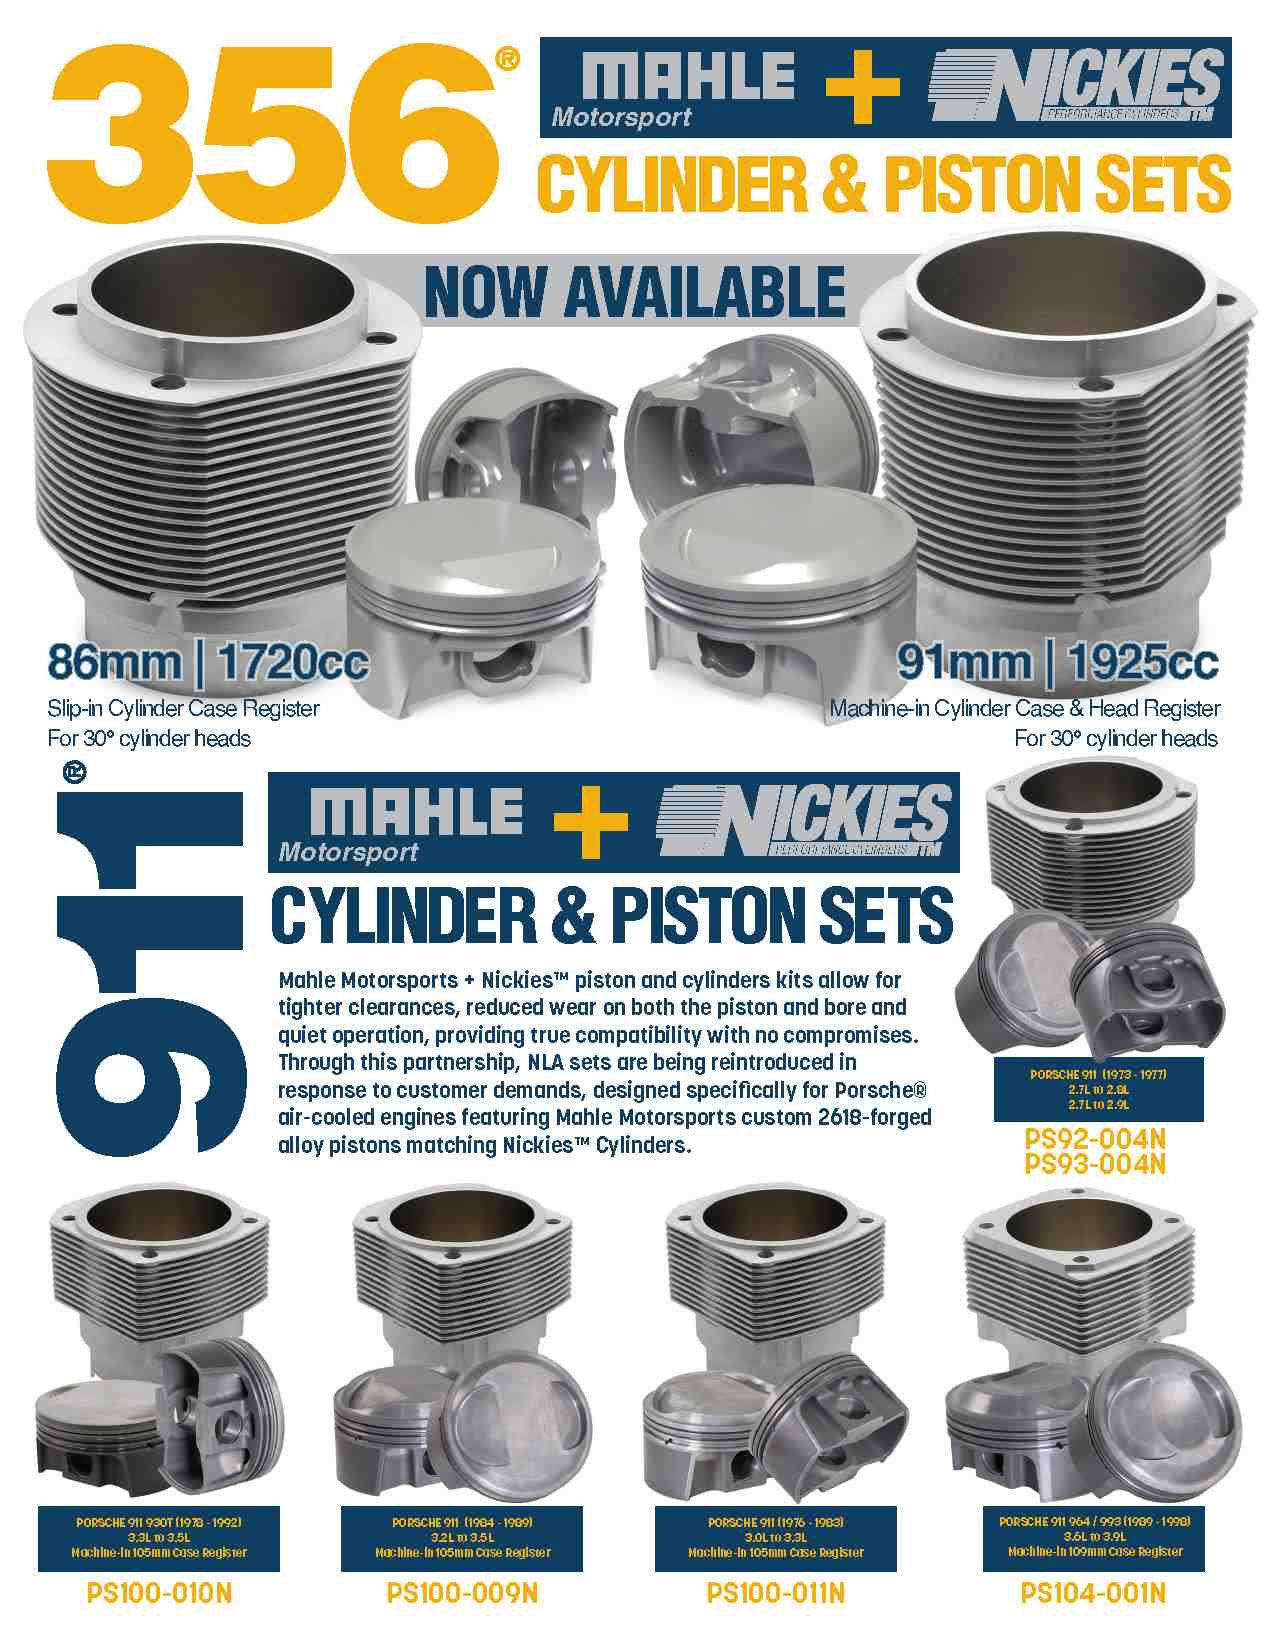 Mahle Motorsports Cylinder and Piston Sets for Aircooled Porsche 356 and 911 Models